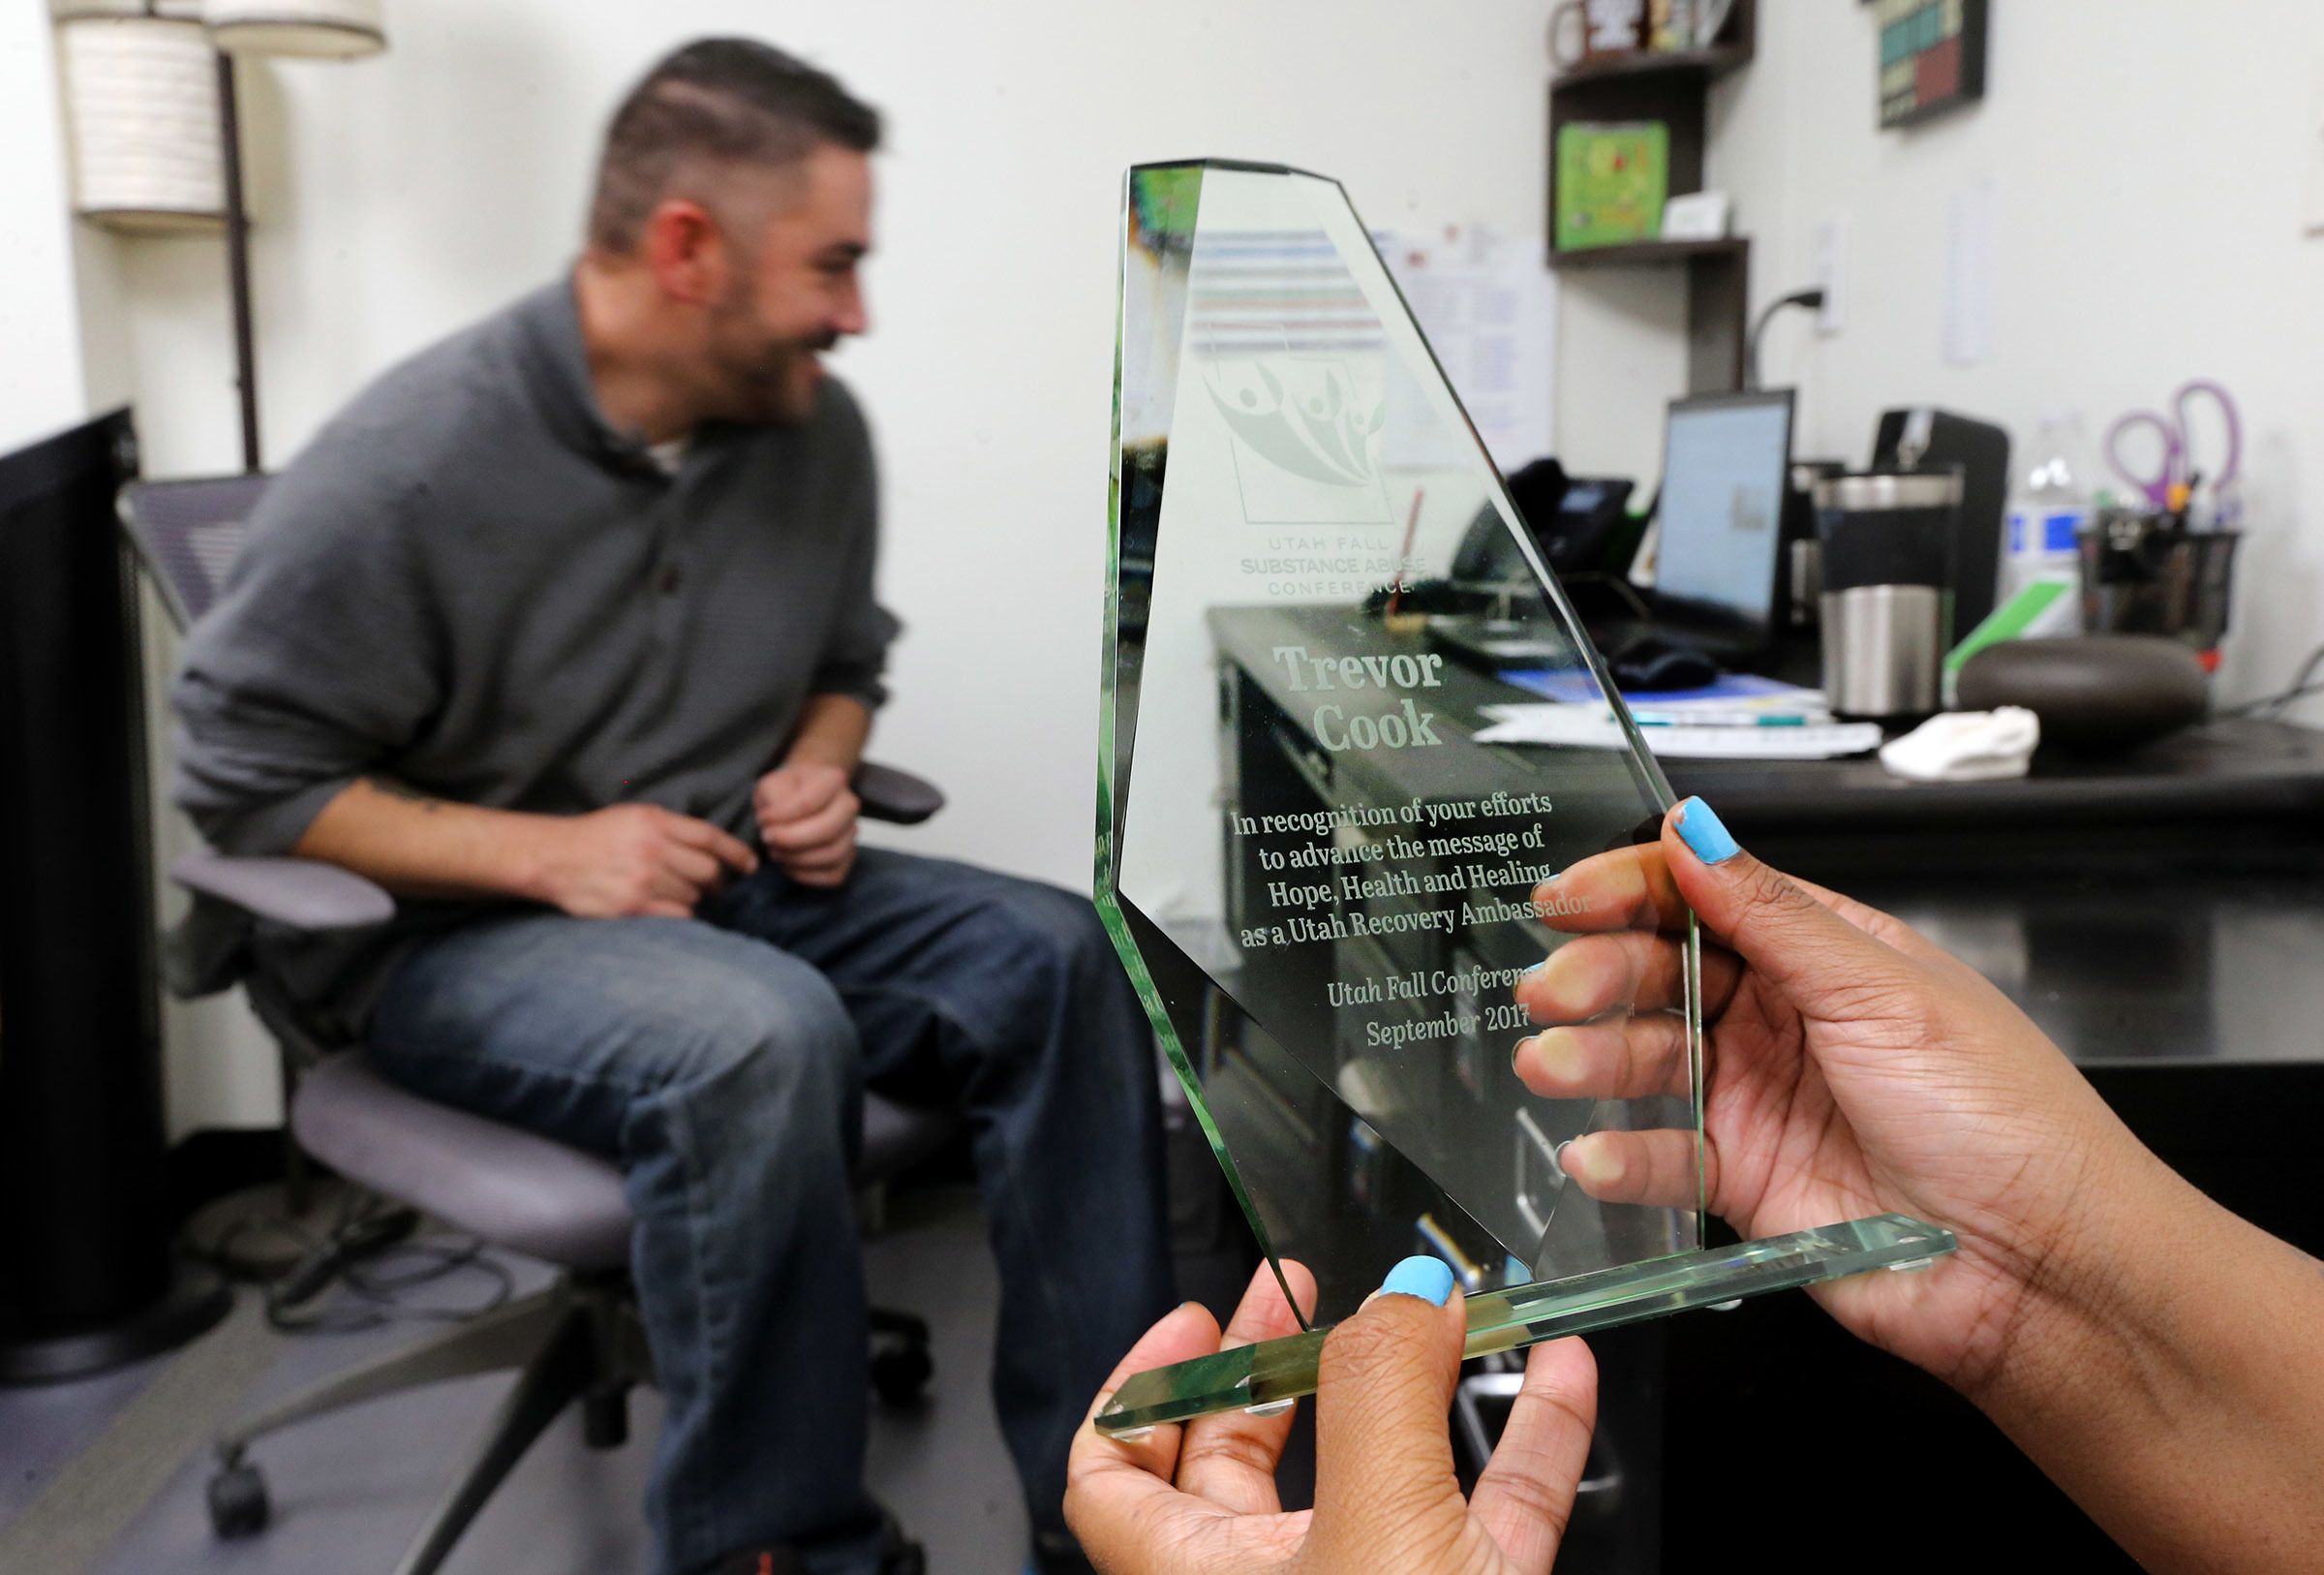 Shantel Cozart holds an award that Trevor Cook, a recovering addict, received as she talks with him at his USARA in his Salt Lake City office on Friday, Dec. 8, 2017.